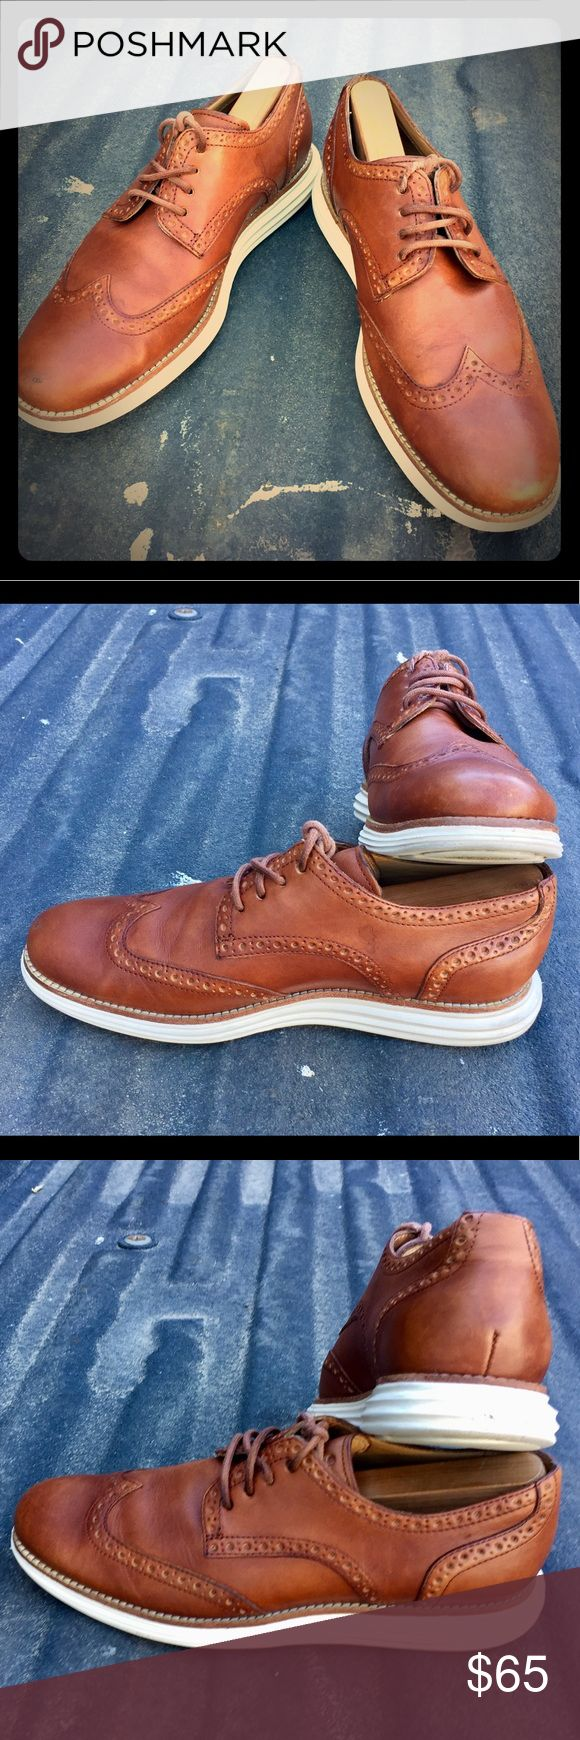 Cole Haan Luna Grand Wingtip Oxfords Cole Haan Luna Grand Wingtip Oxfords  Make: Cole Haan Model: Luna Grand Wingtips Color: Saddle Tan/Cream White Size: 8 men's Condition: 9/10, -1 for no tags or box  VERY lightly worn, SUPER comfortable, Modern Wingtips. Cole Haan Shoes Oxfords & Derbys